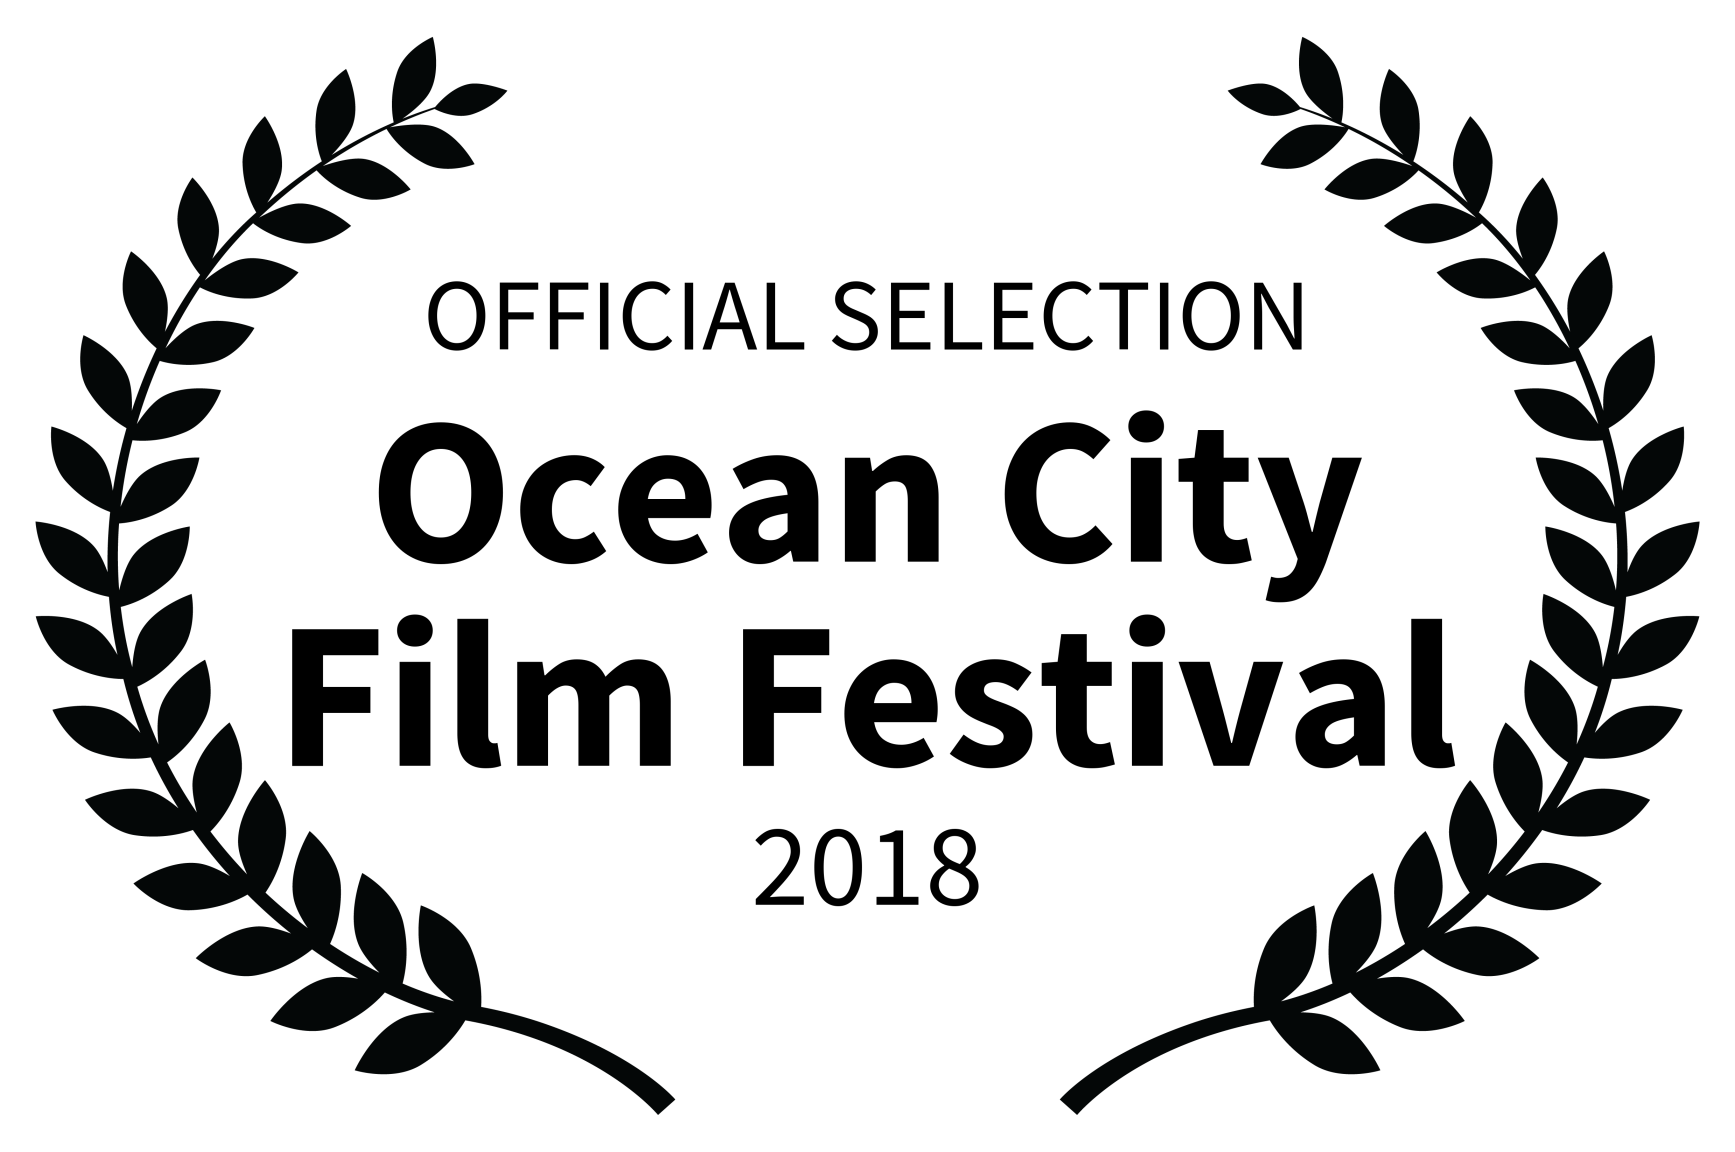 OFFICIAL SELECTION - Ocean City Film Fes